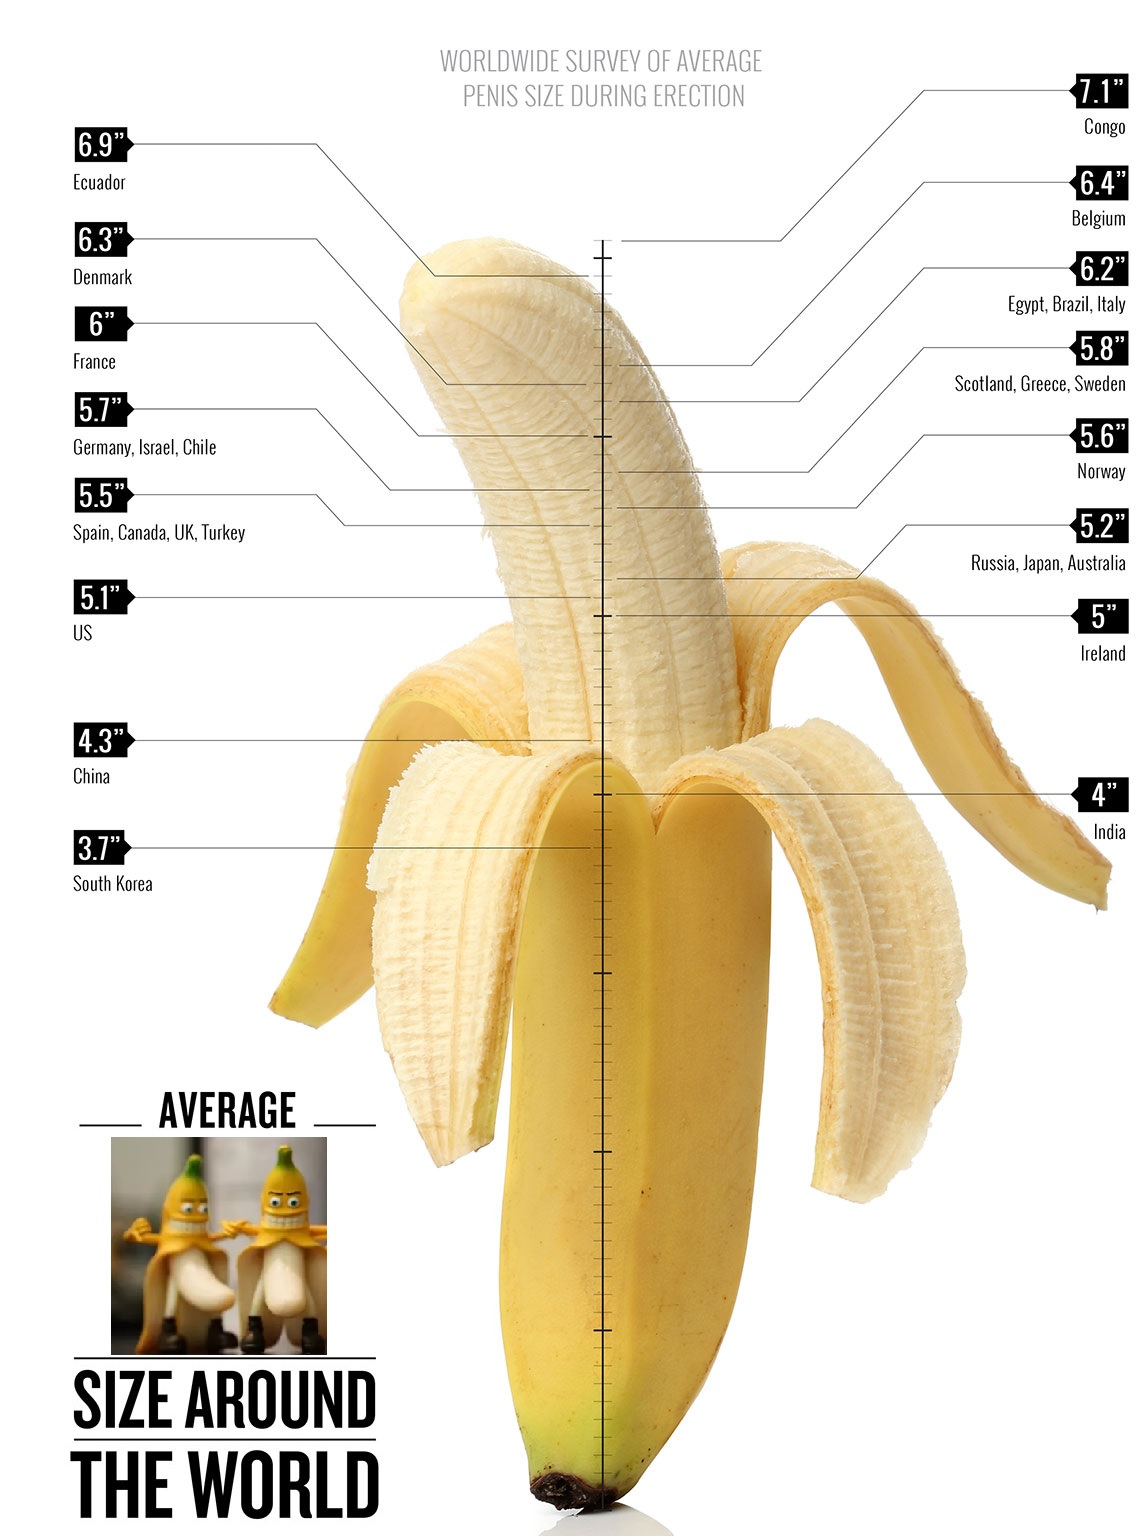 Penis size infographic